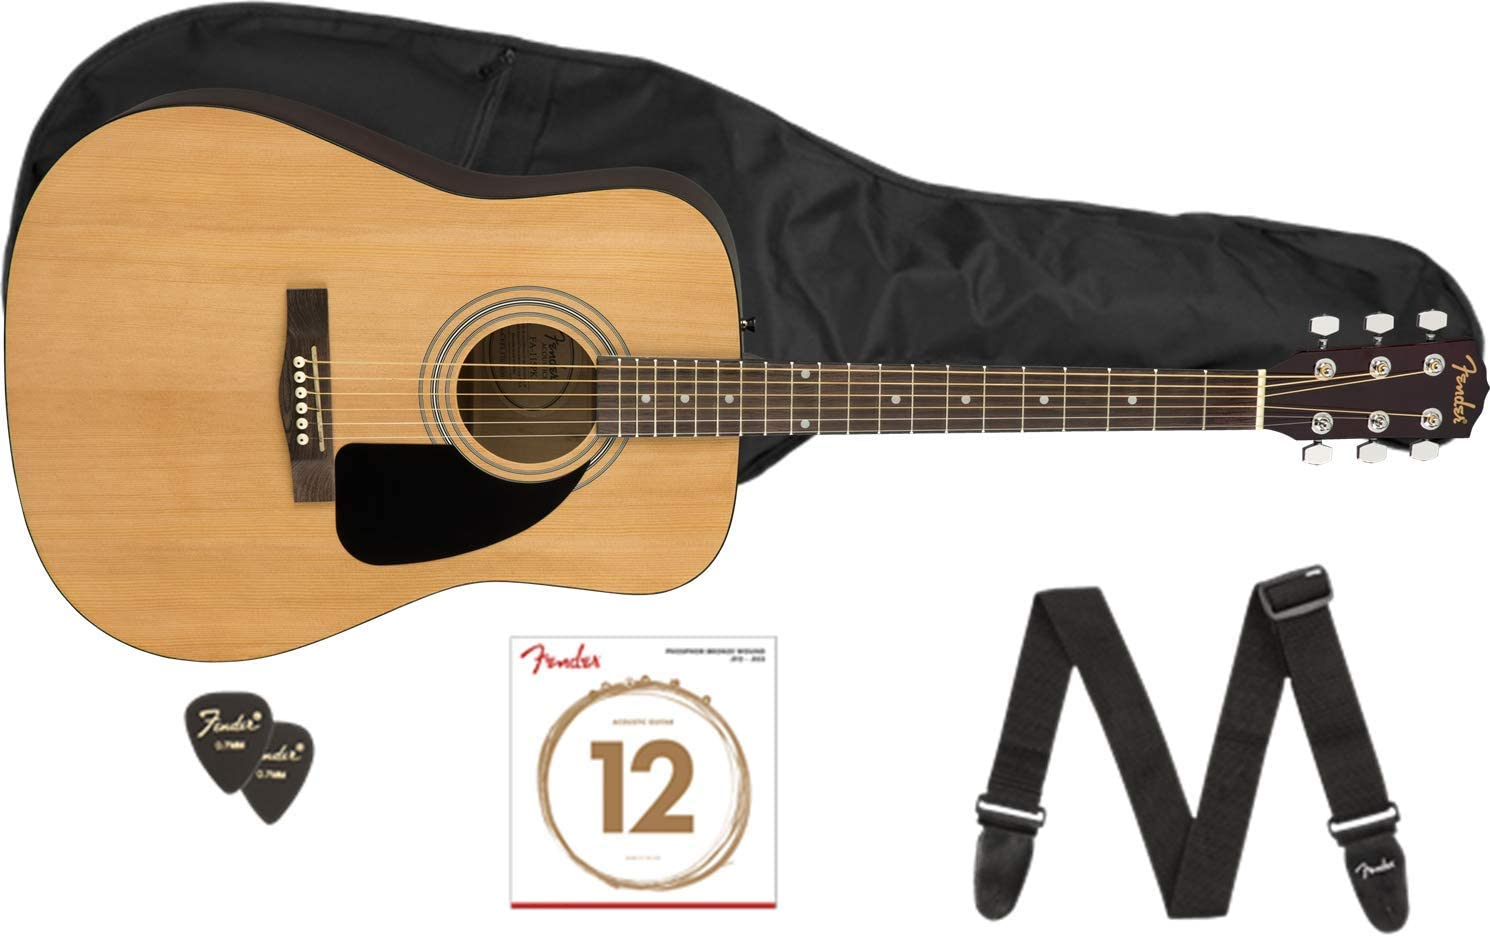 FENDER FA115 DREAD PACK NATURAL GUITARRA ACÚSTICA: Amazon.es ...